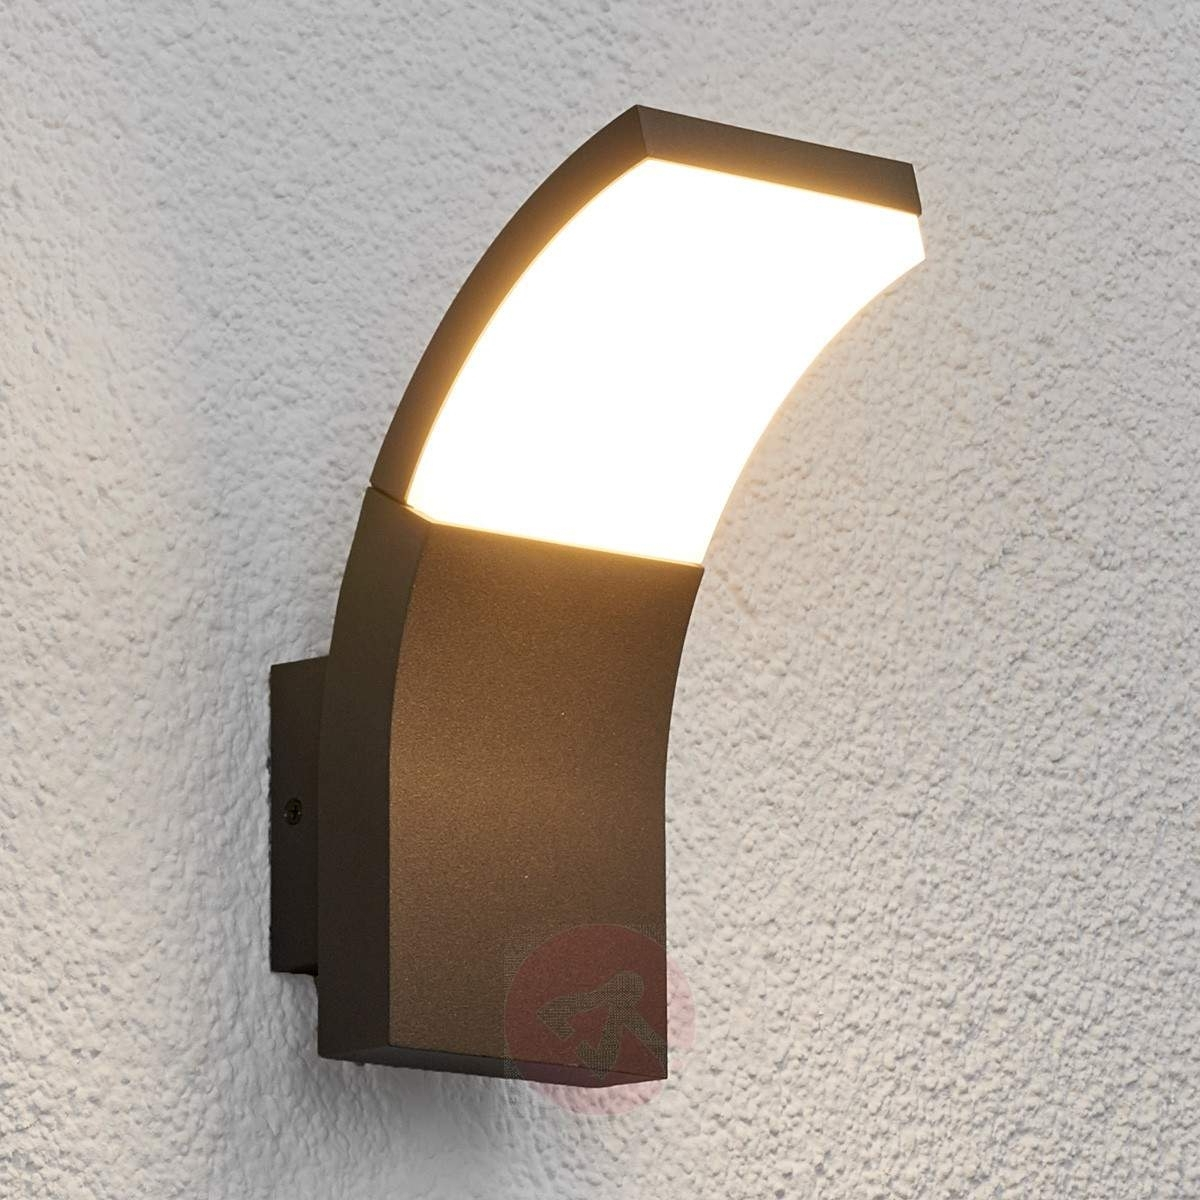 Popular Led Outdoor Wall Light Timm Lights Co Uk Brilliant Led In 4 Regarding Outdoor Led Wall Lighting (View 11 of 20)